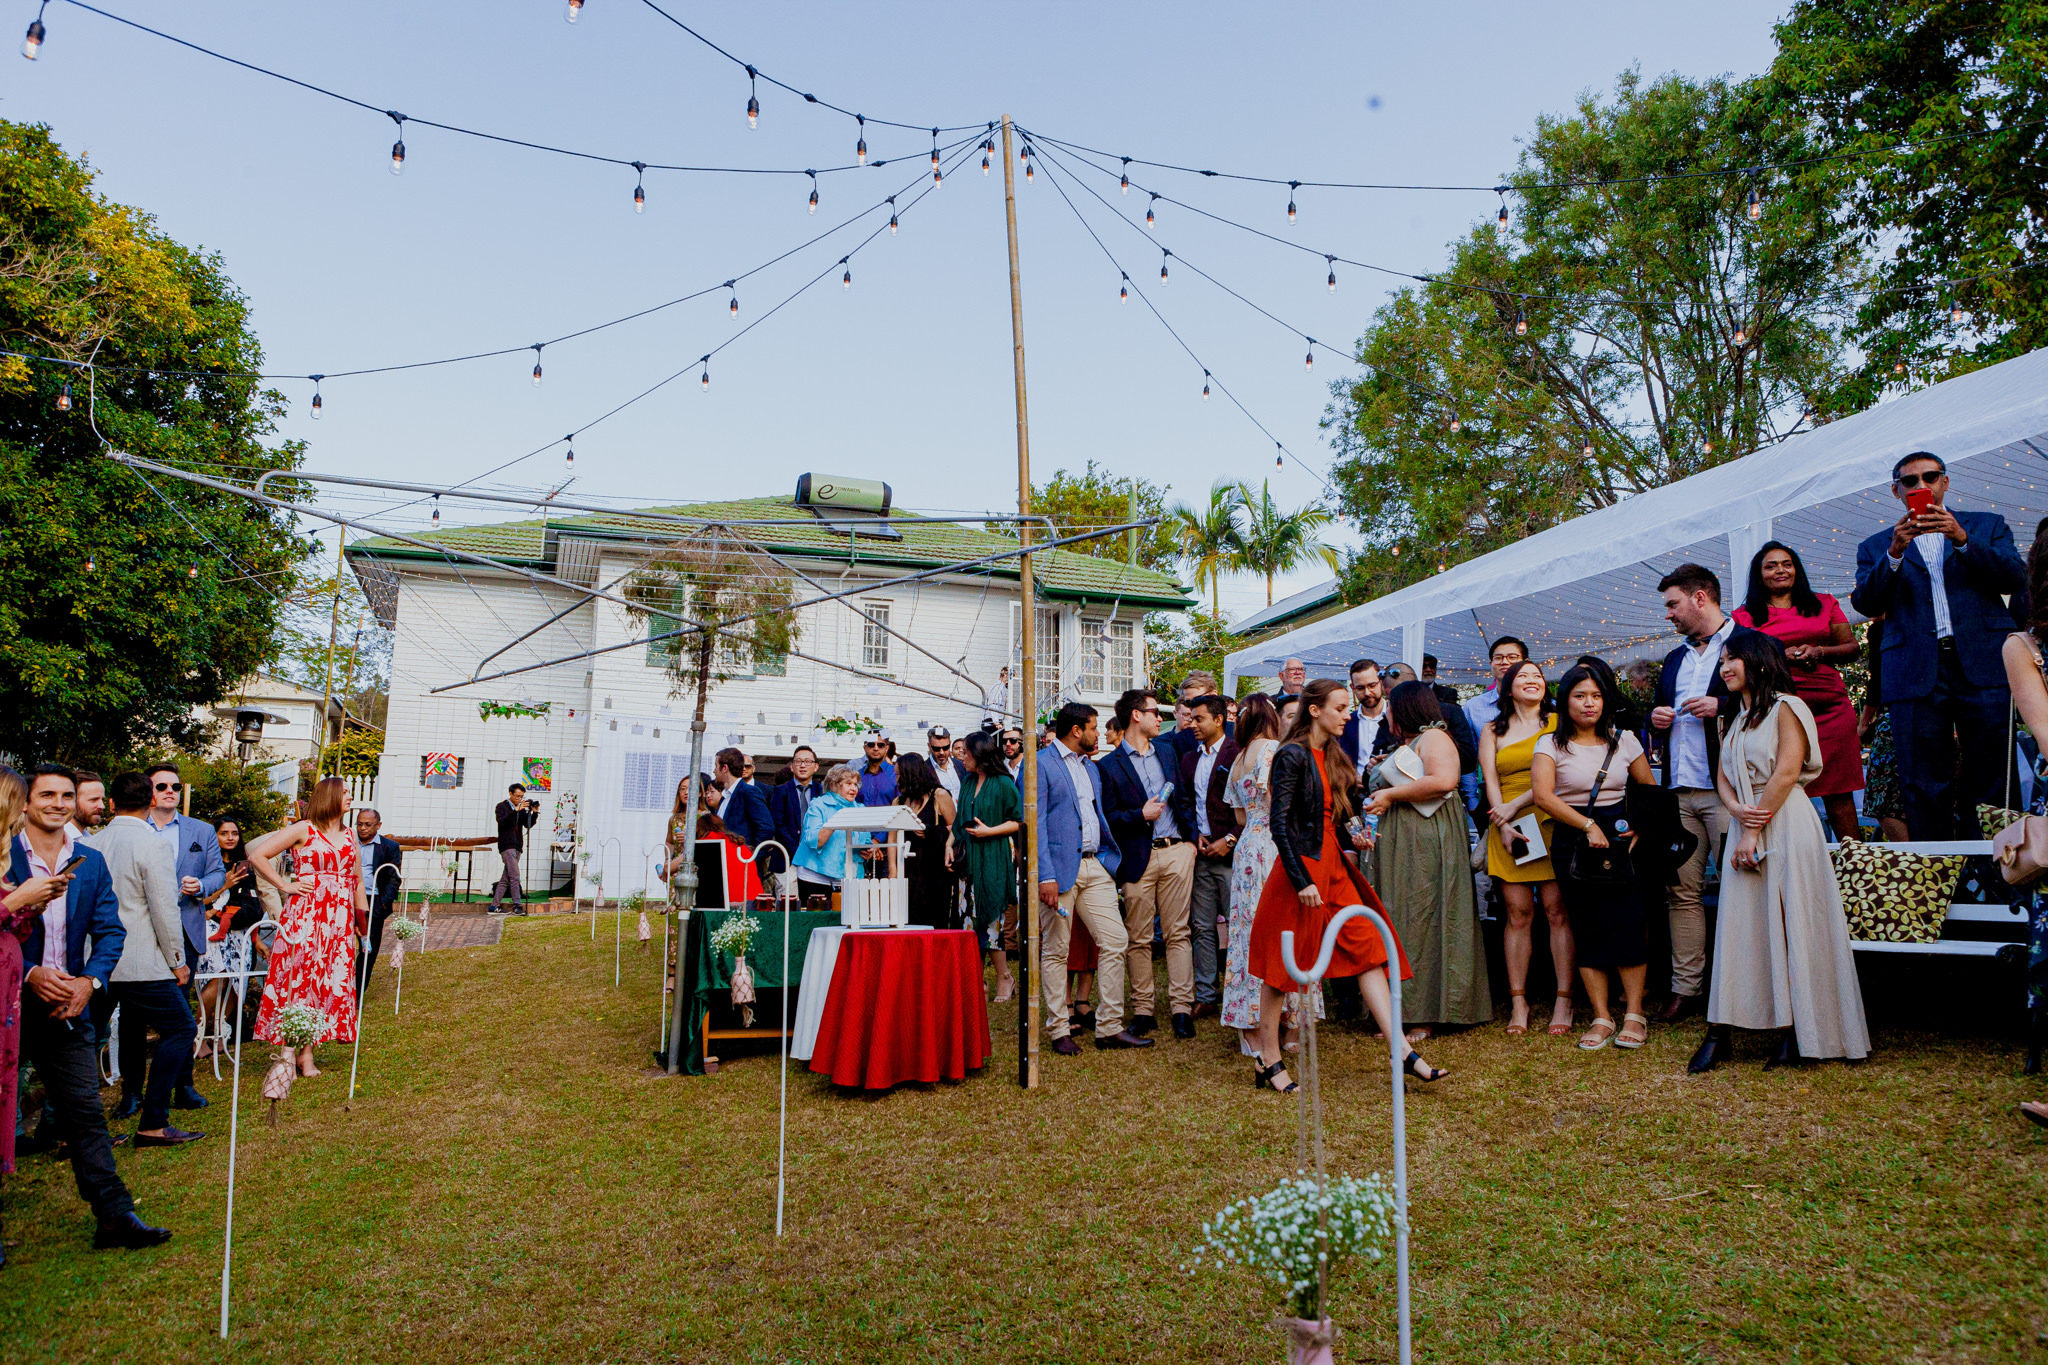 Dressed up crowd gathers in an Australian backyard before a wedding ceremony